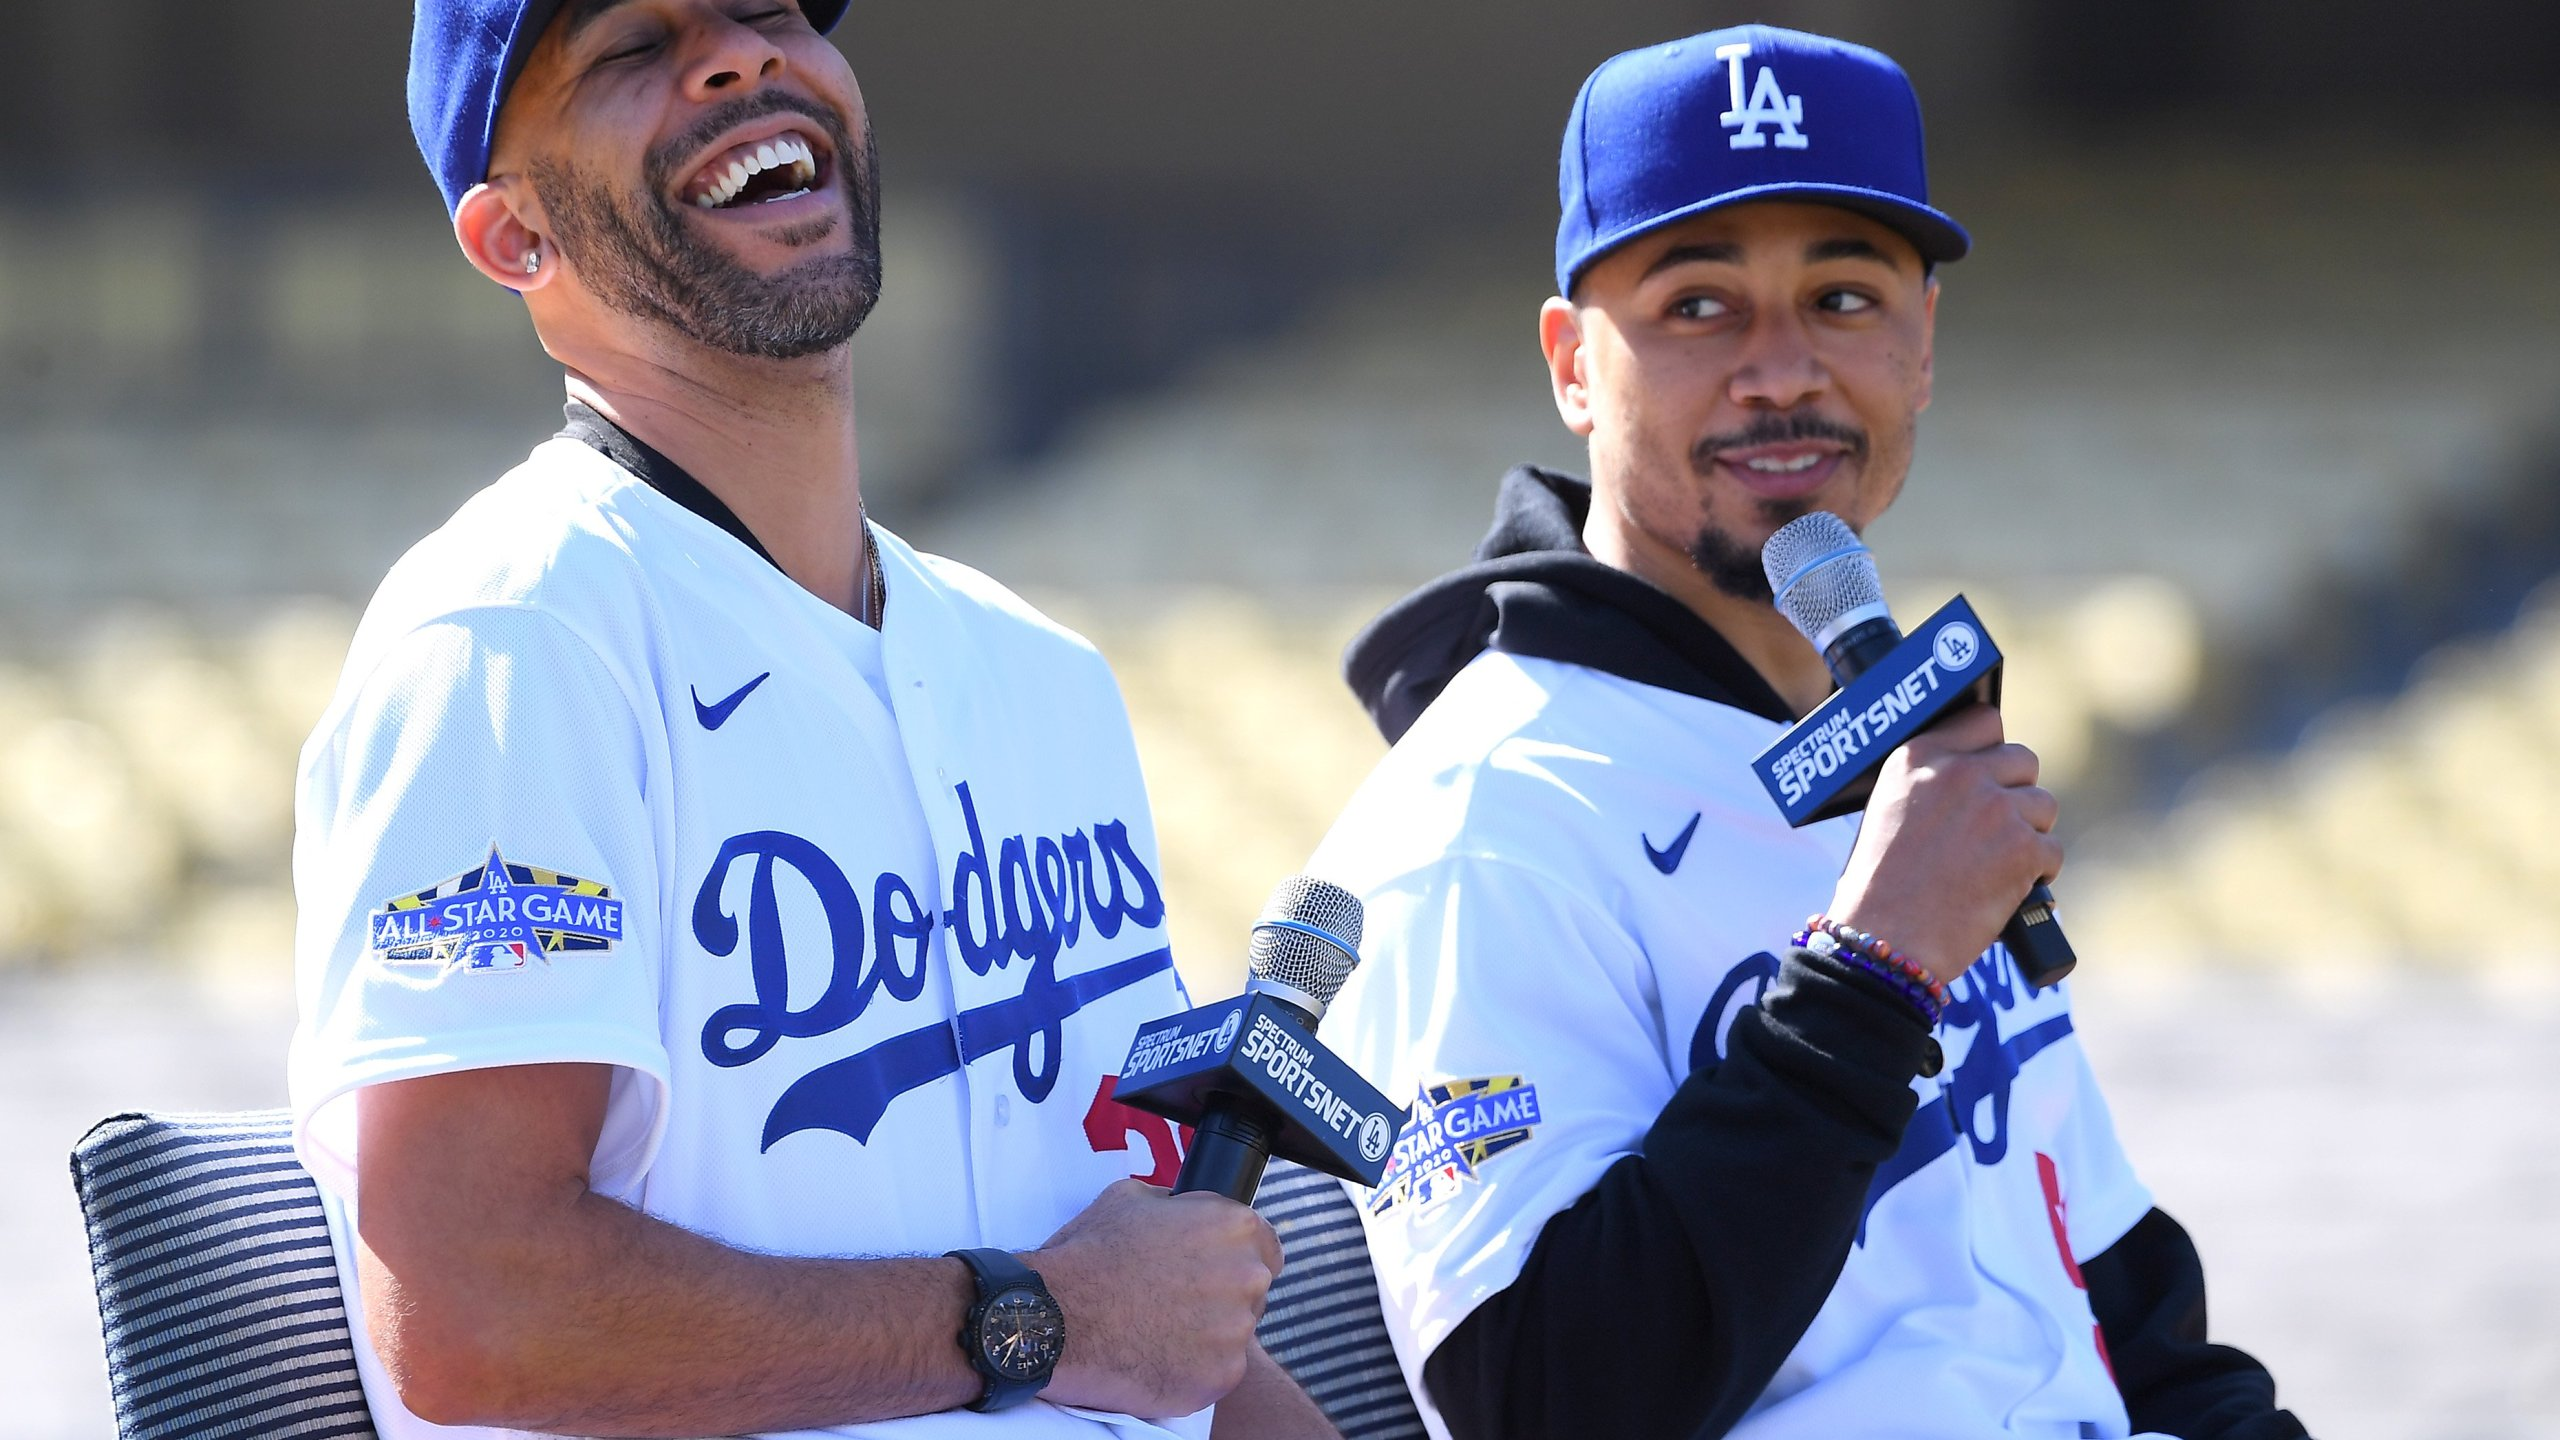 David Price #33 and Mookie Betts #50 of the Los Angeles Dodgers answer questions from the media during an introductory press conference at Dodger Stadium on Feb. 12, 2020. (Credit: Jayne Kamin-Oncea/Getty Images)